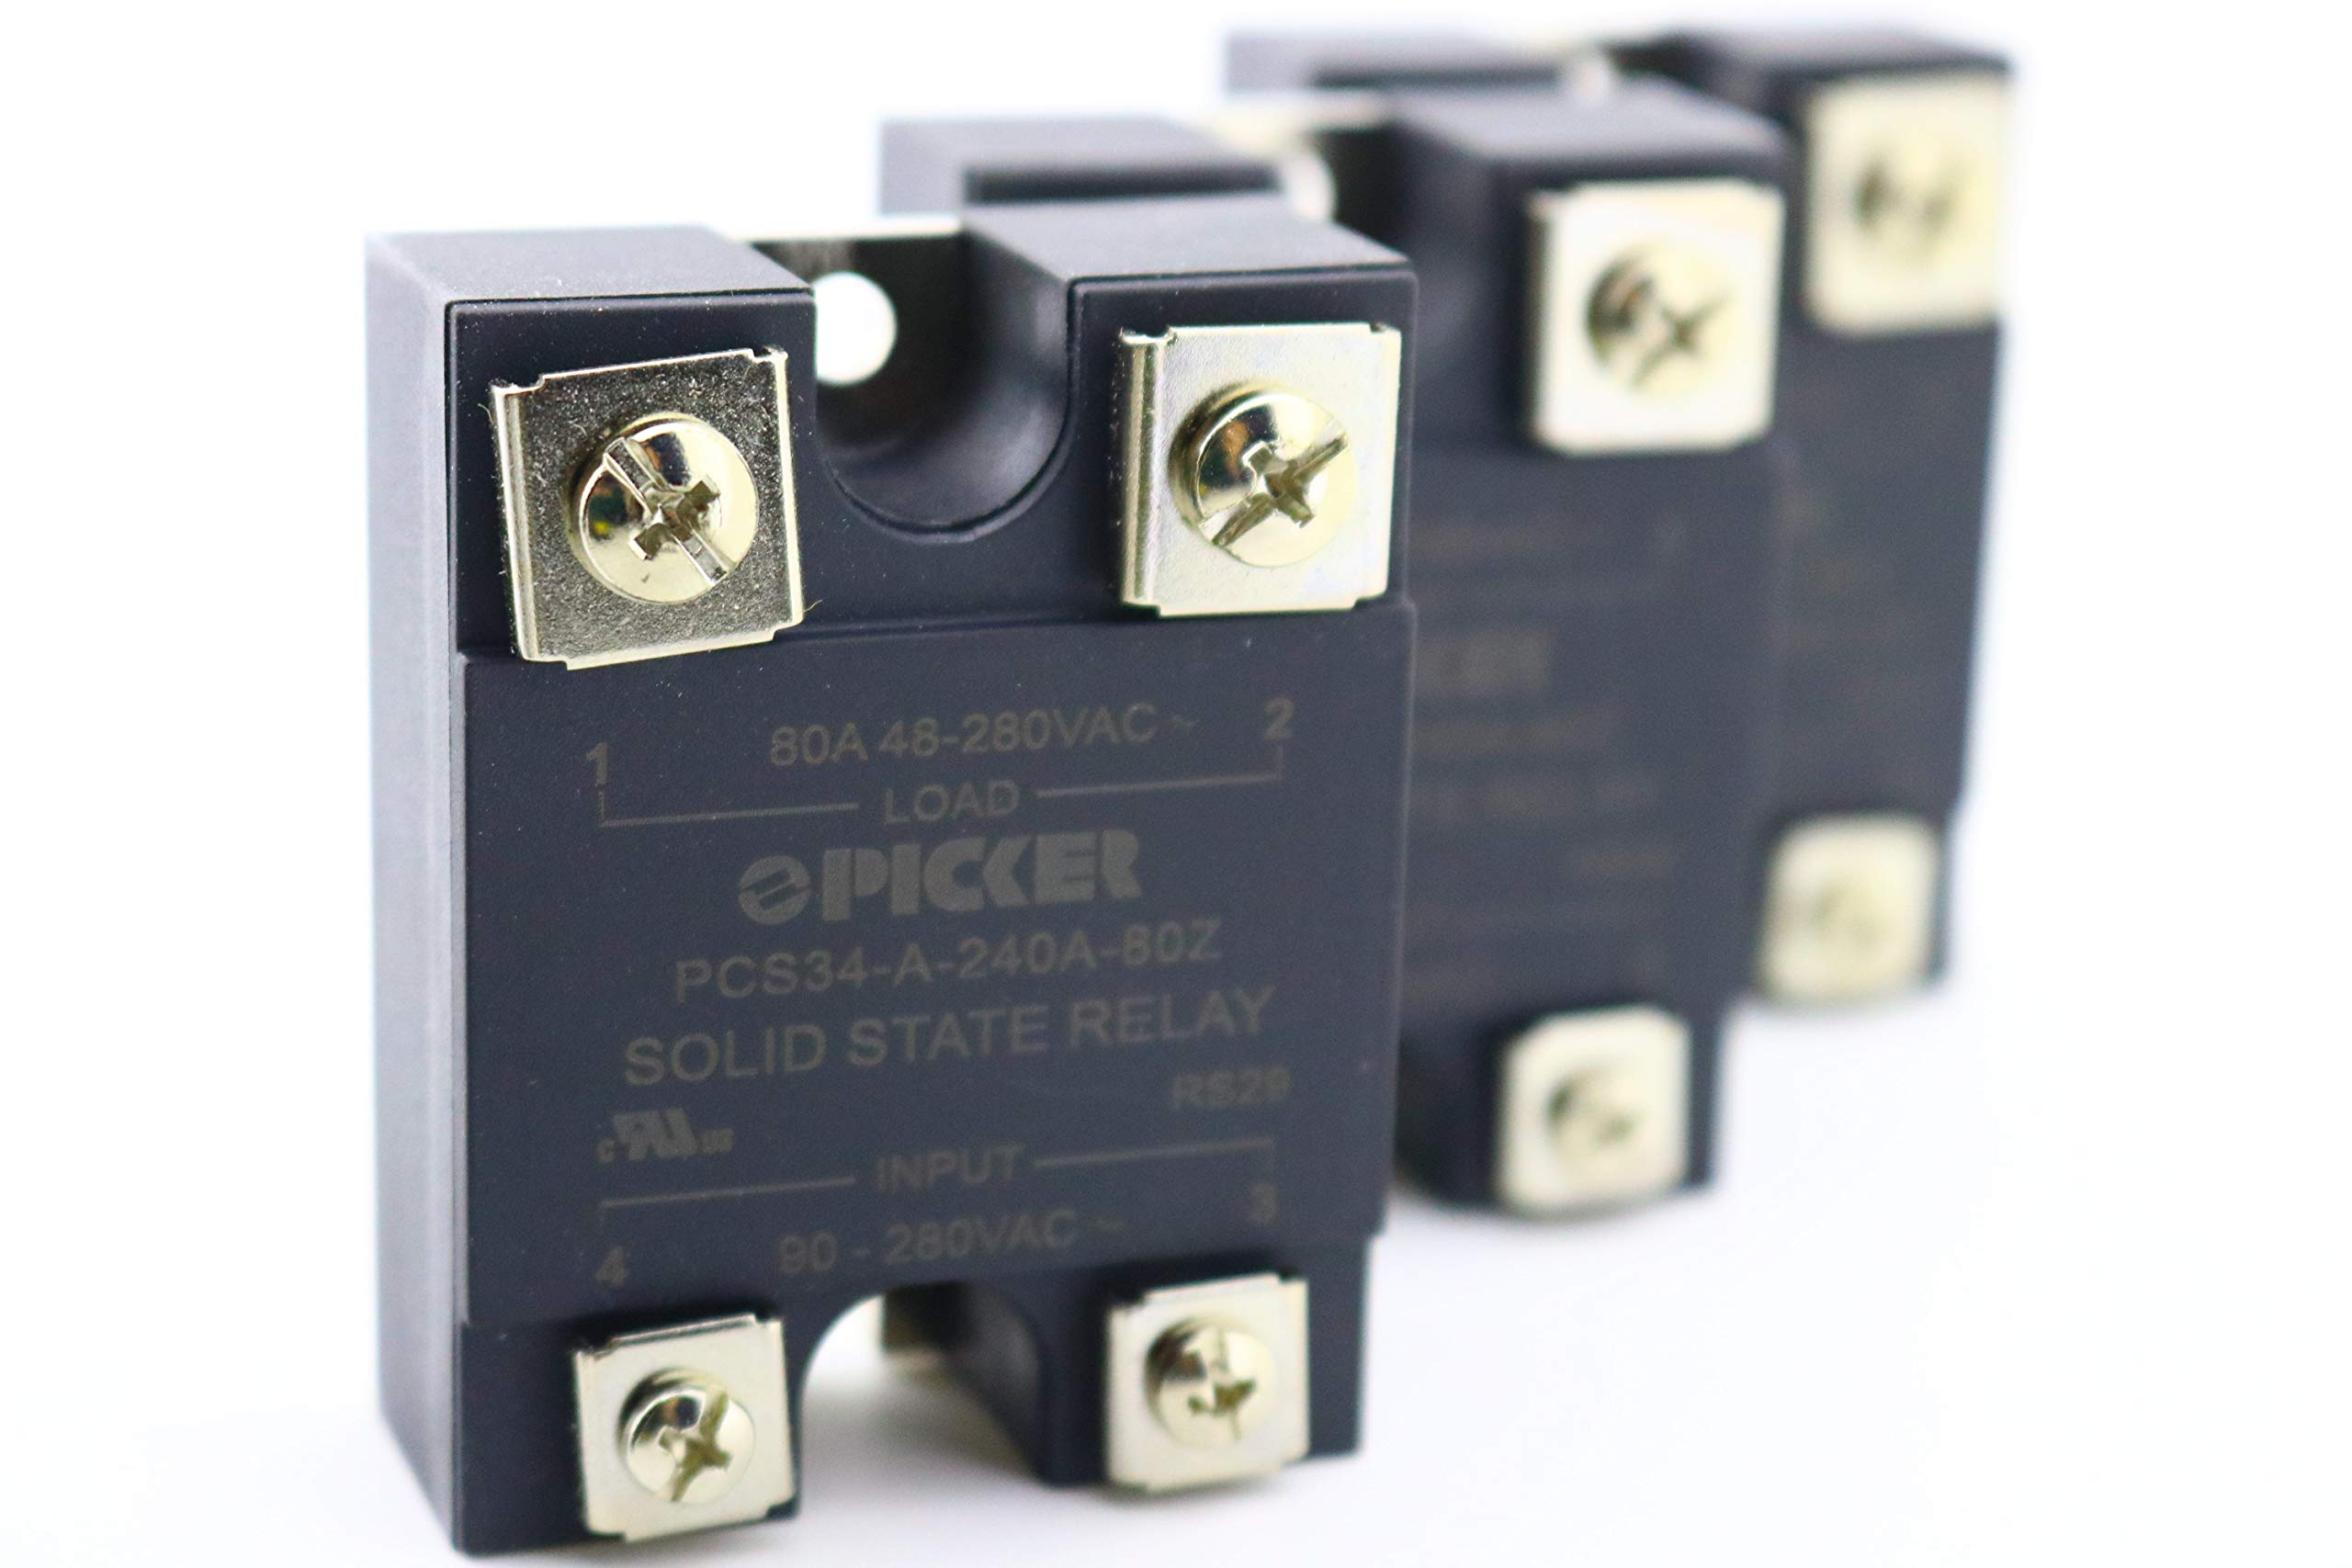 (x3) PCS34-A-240A-80Z-3 | 80 Amp, 48-280 VAC Zero Crossing Output | UL Rated | 90-280 VAC Input | Hockey Puck Solid State Relay | Cross: Crydom A2475 and CWA2490